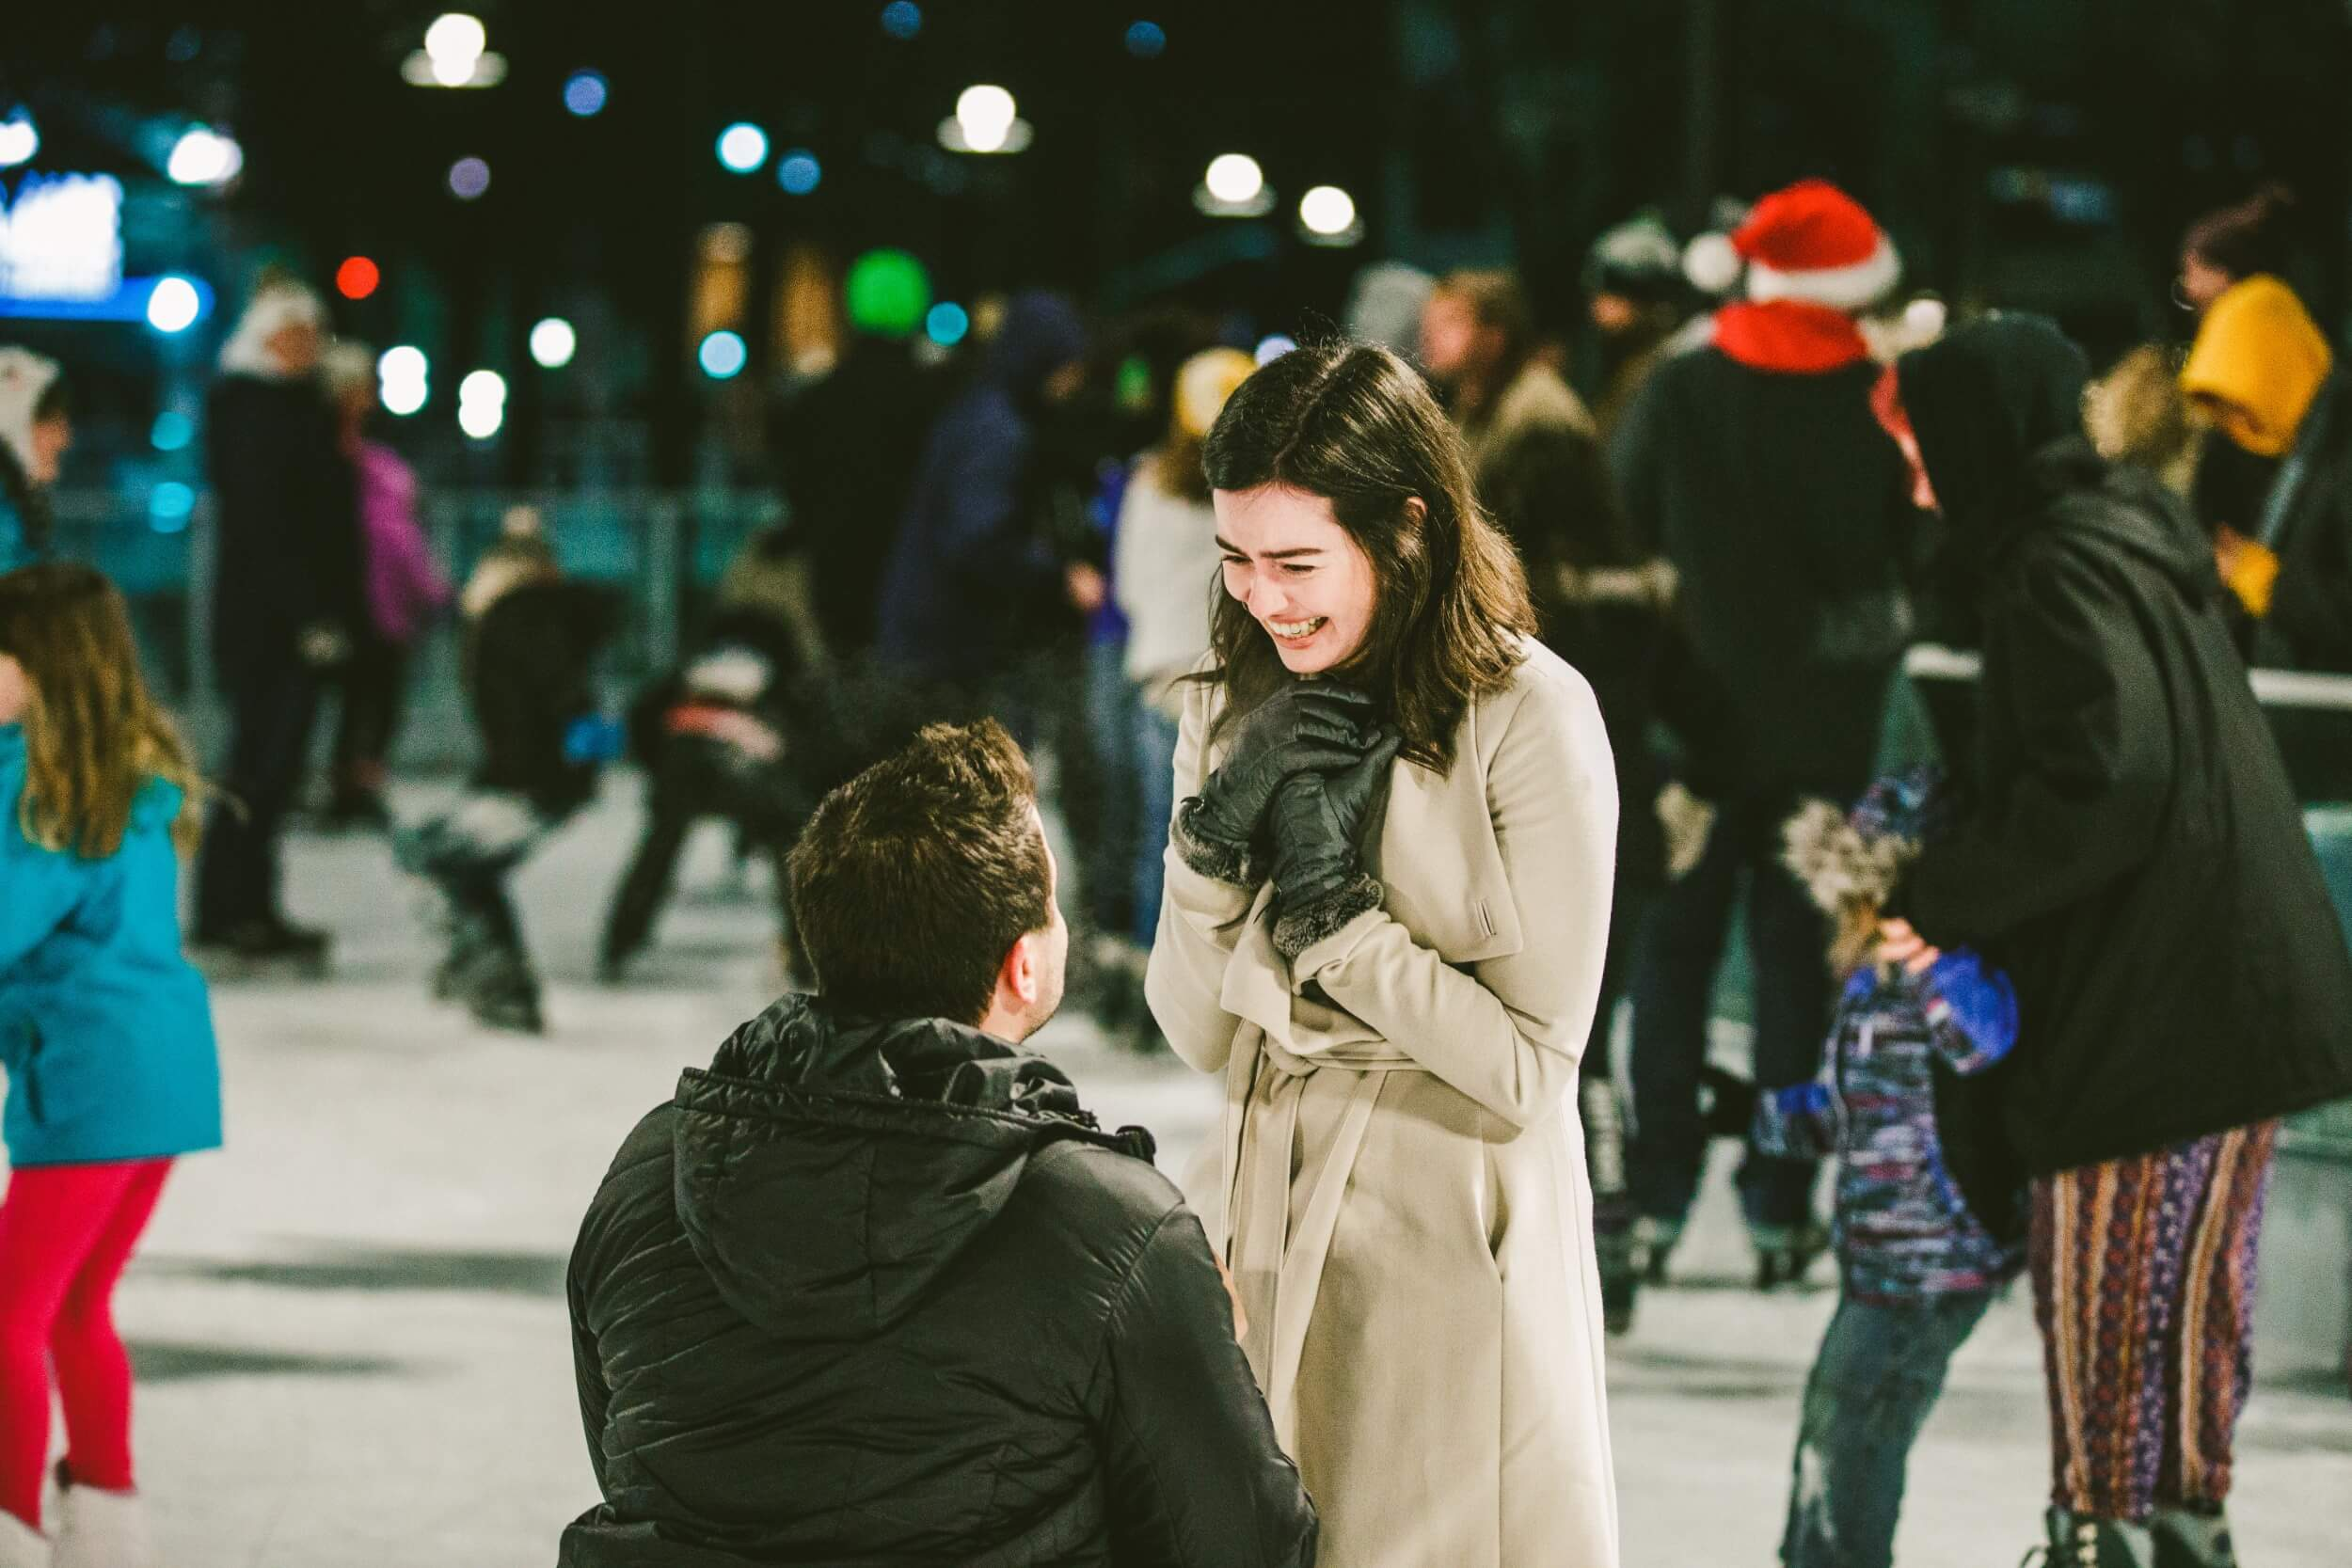 Ice Ribbon suprise proposal spokane (23).jpg